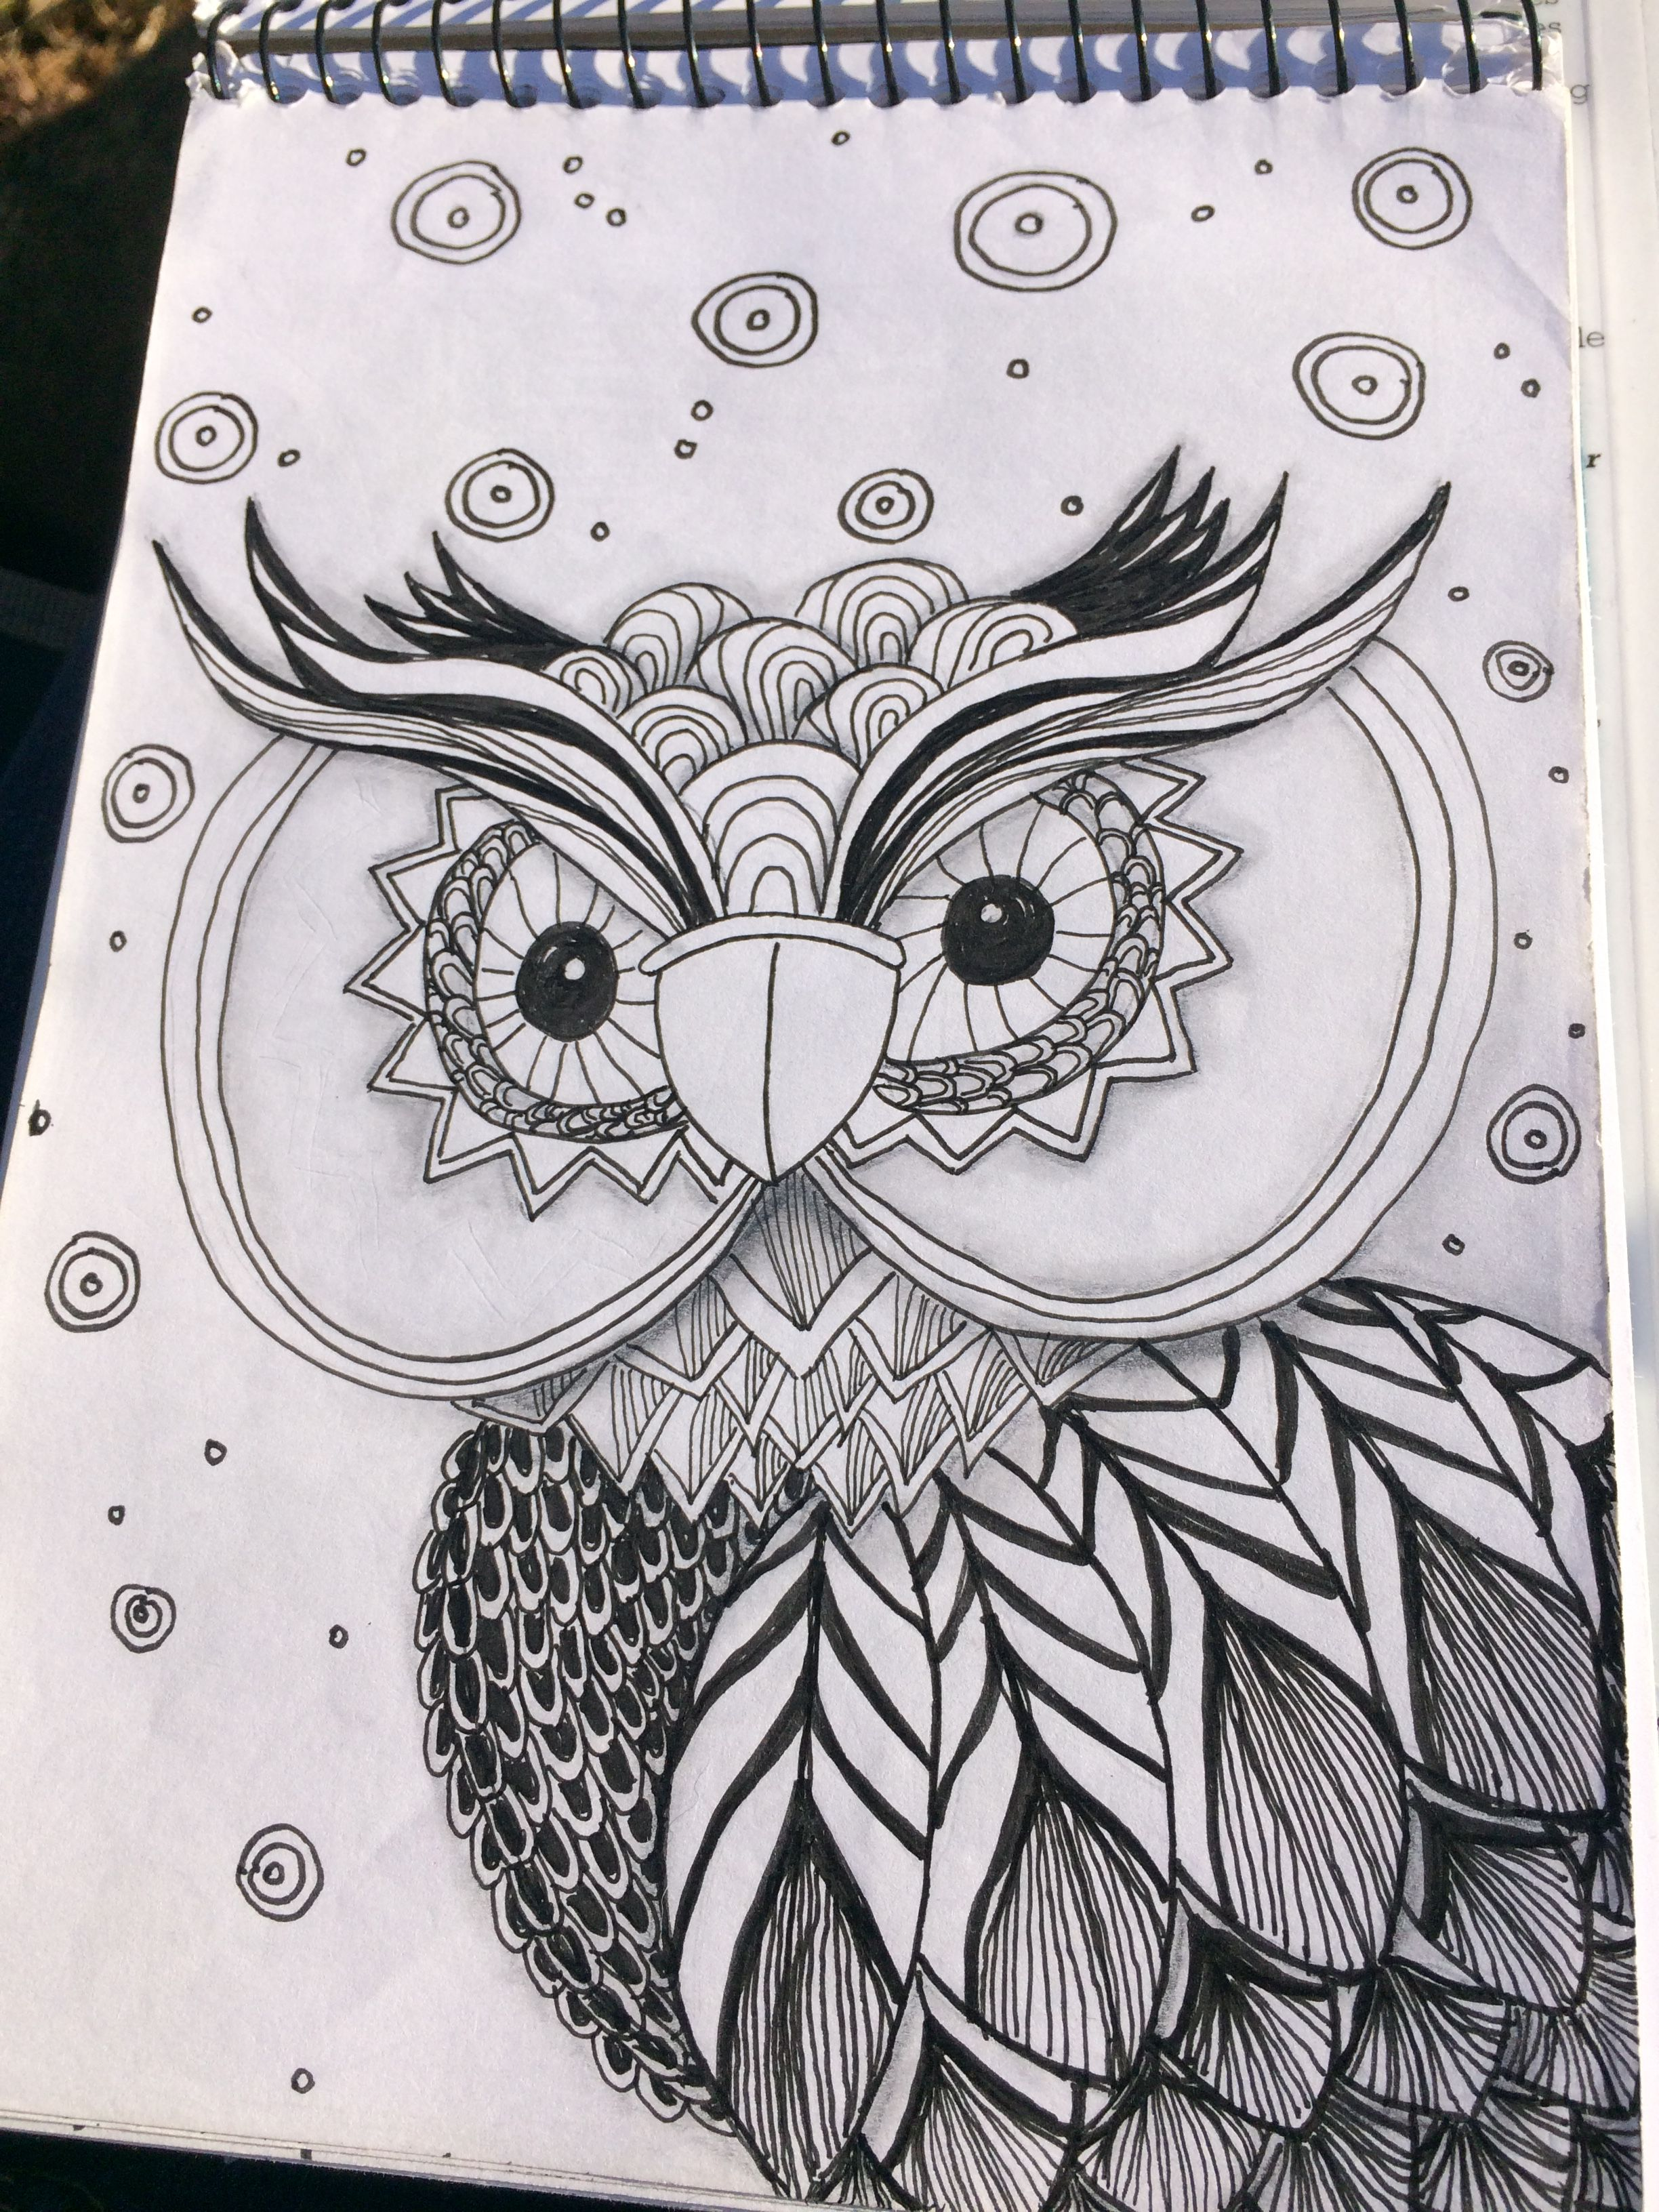 What's up owl?